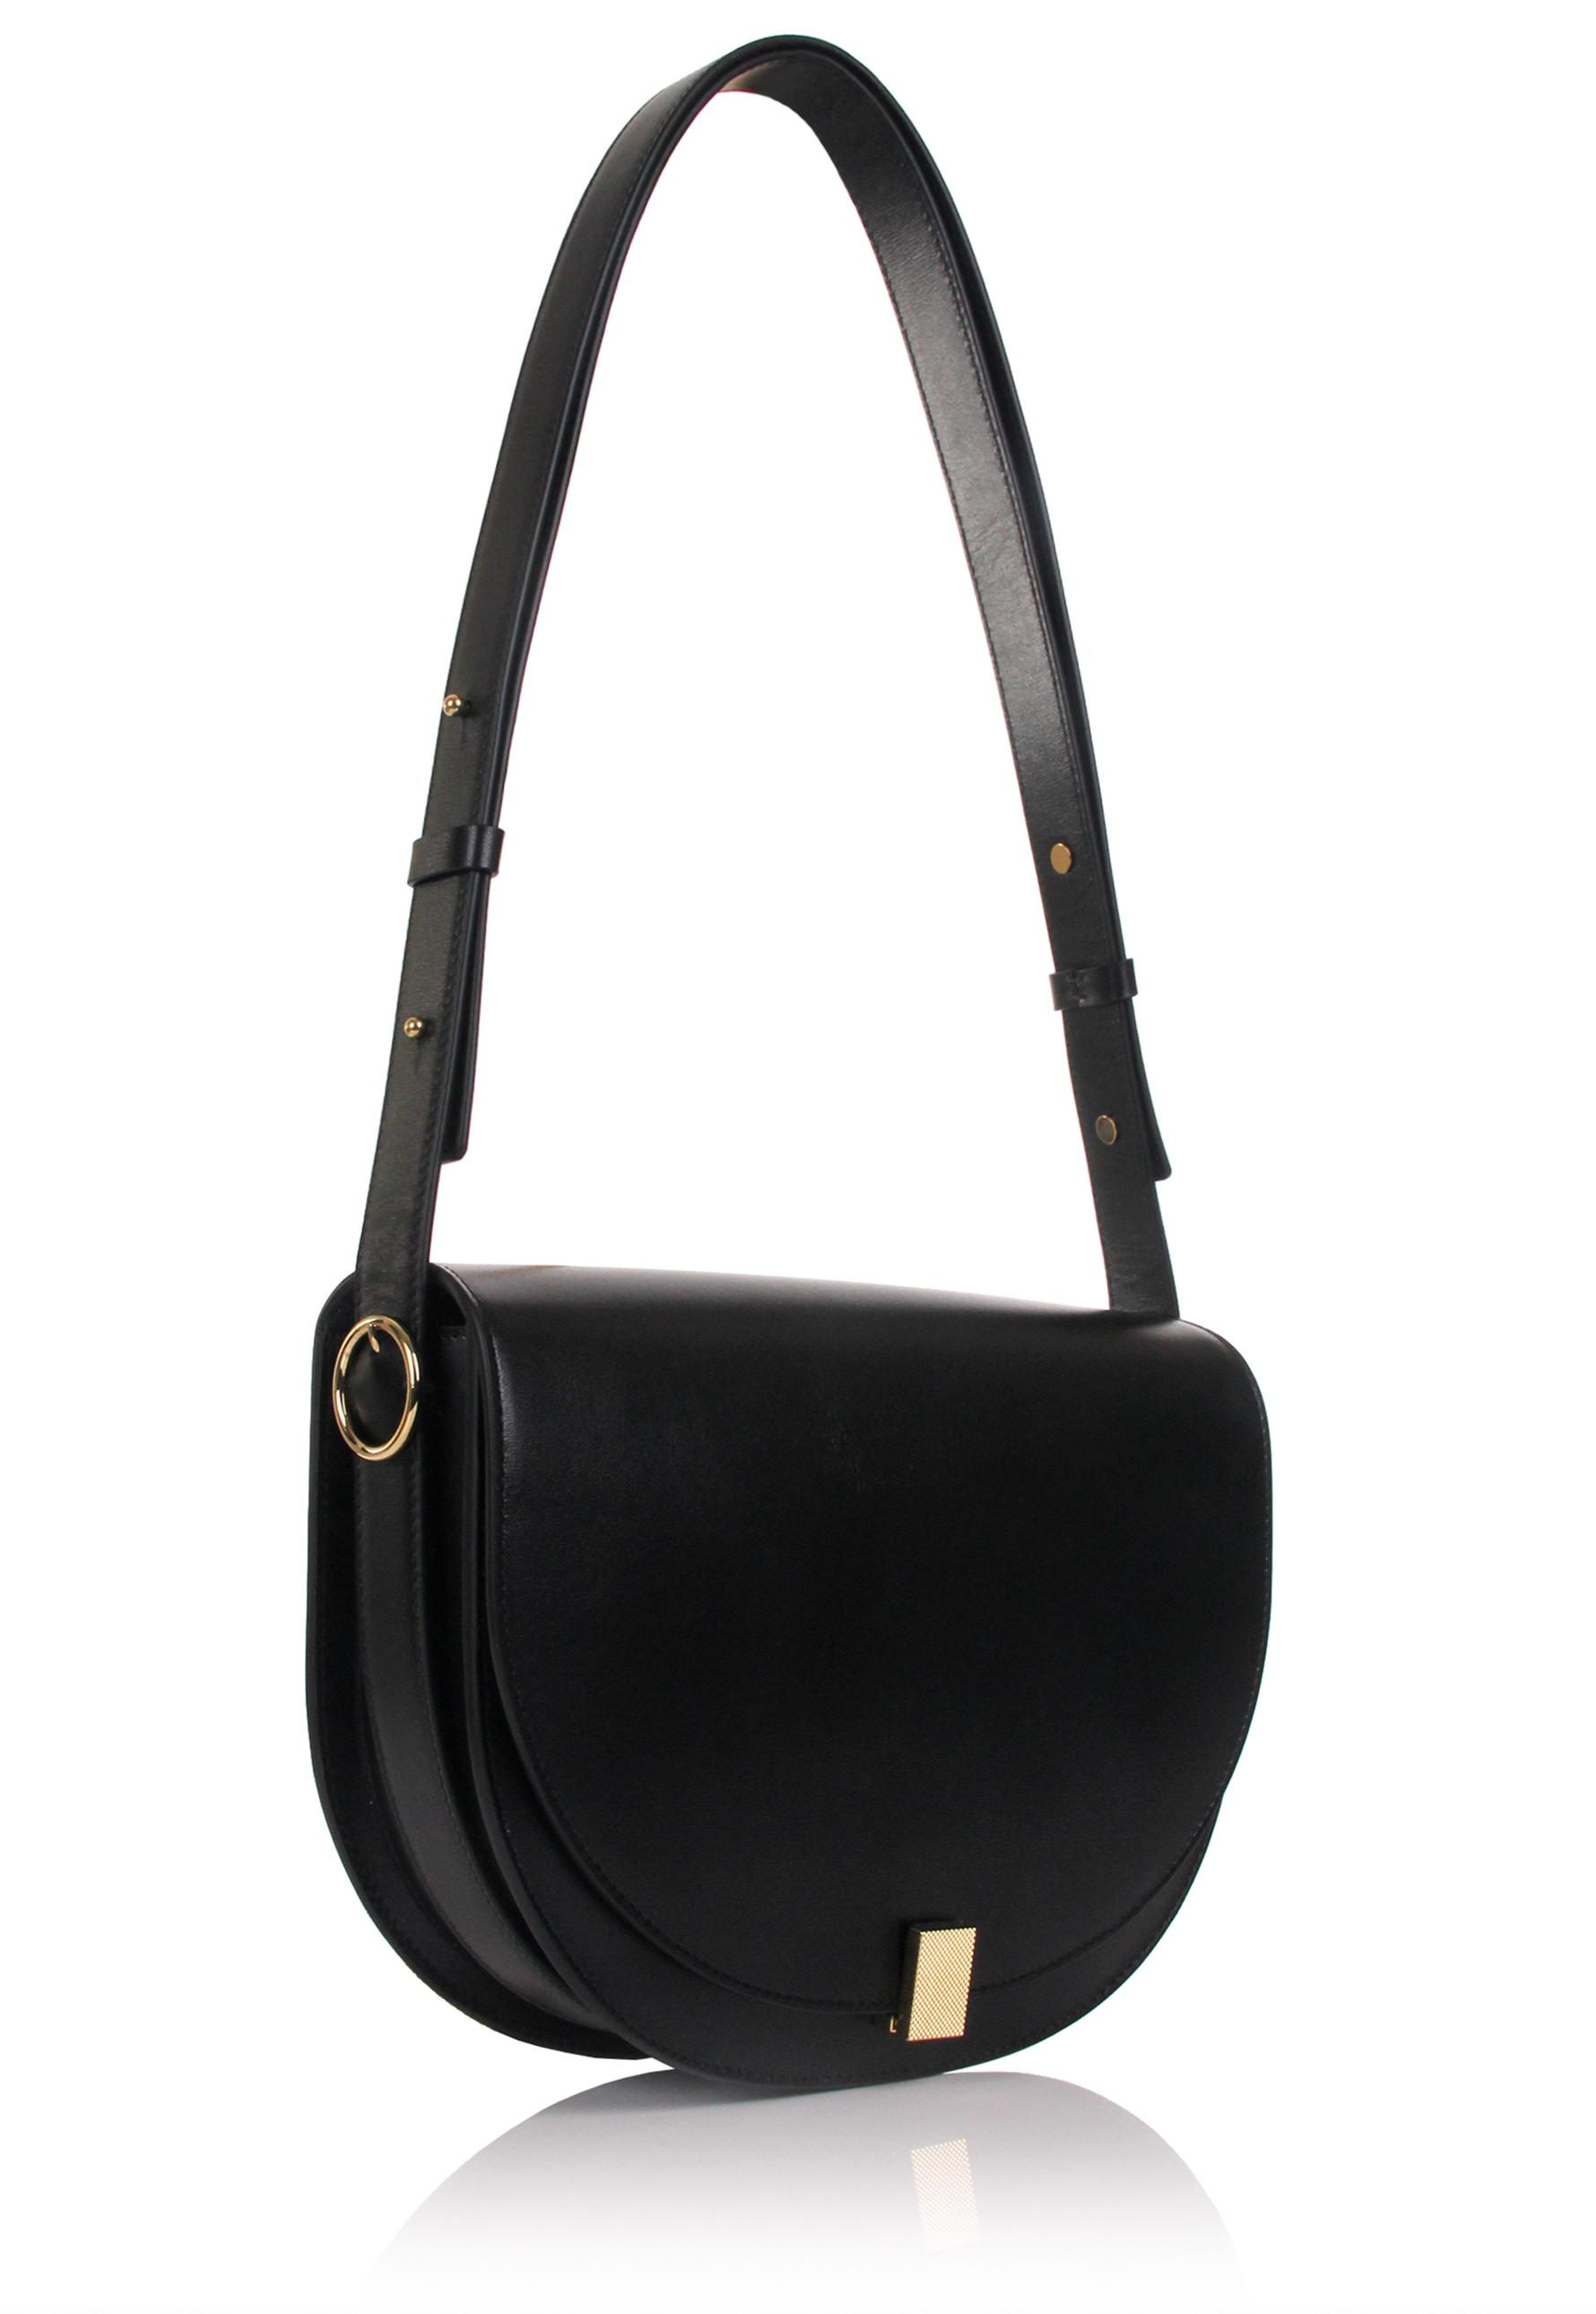 05d0c2f8886ca Lyst - Victoria Beckham Half Moon Box Bag Black in Black